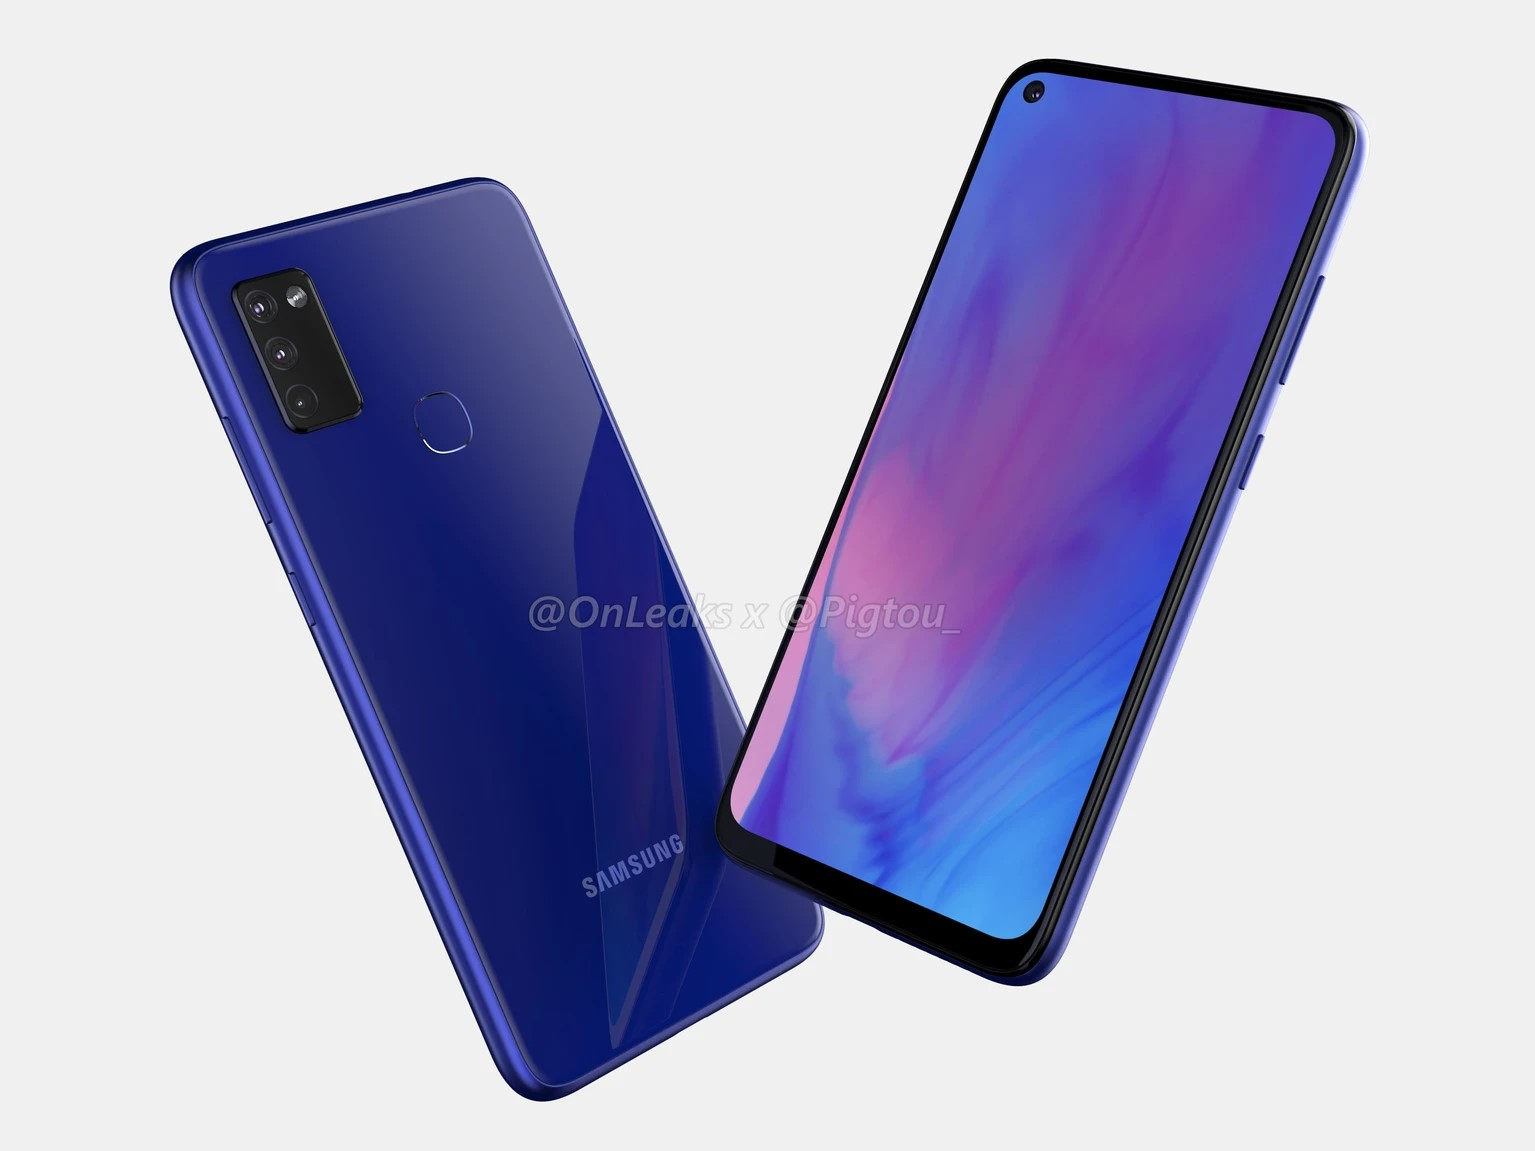 Samsung Galaxy M51 Is Tipped To Feature A 6 67 Inch Amoled Screen With A 7 000 Mah Battery And A 64 Mp Camera Notebookcheck Net News